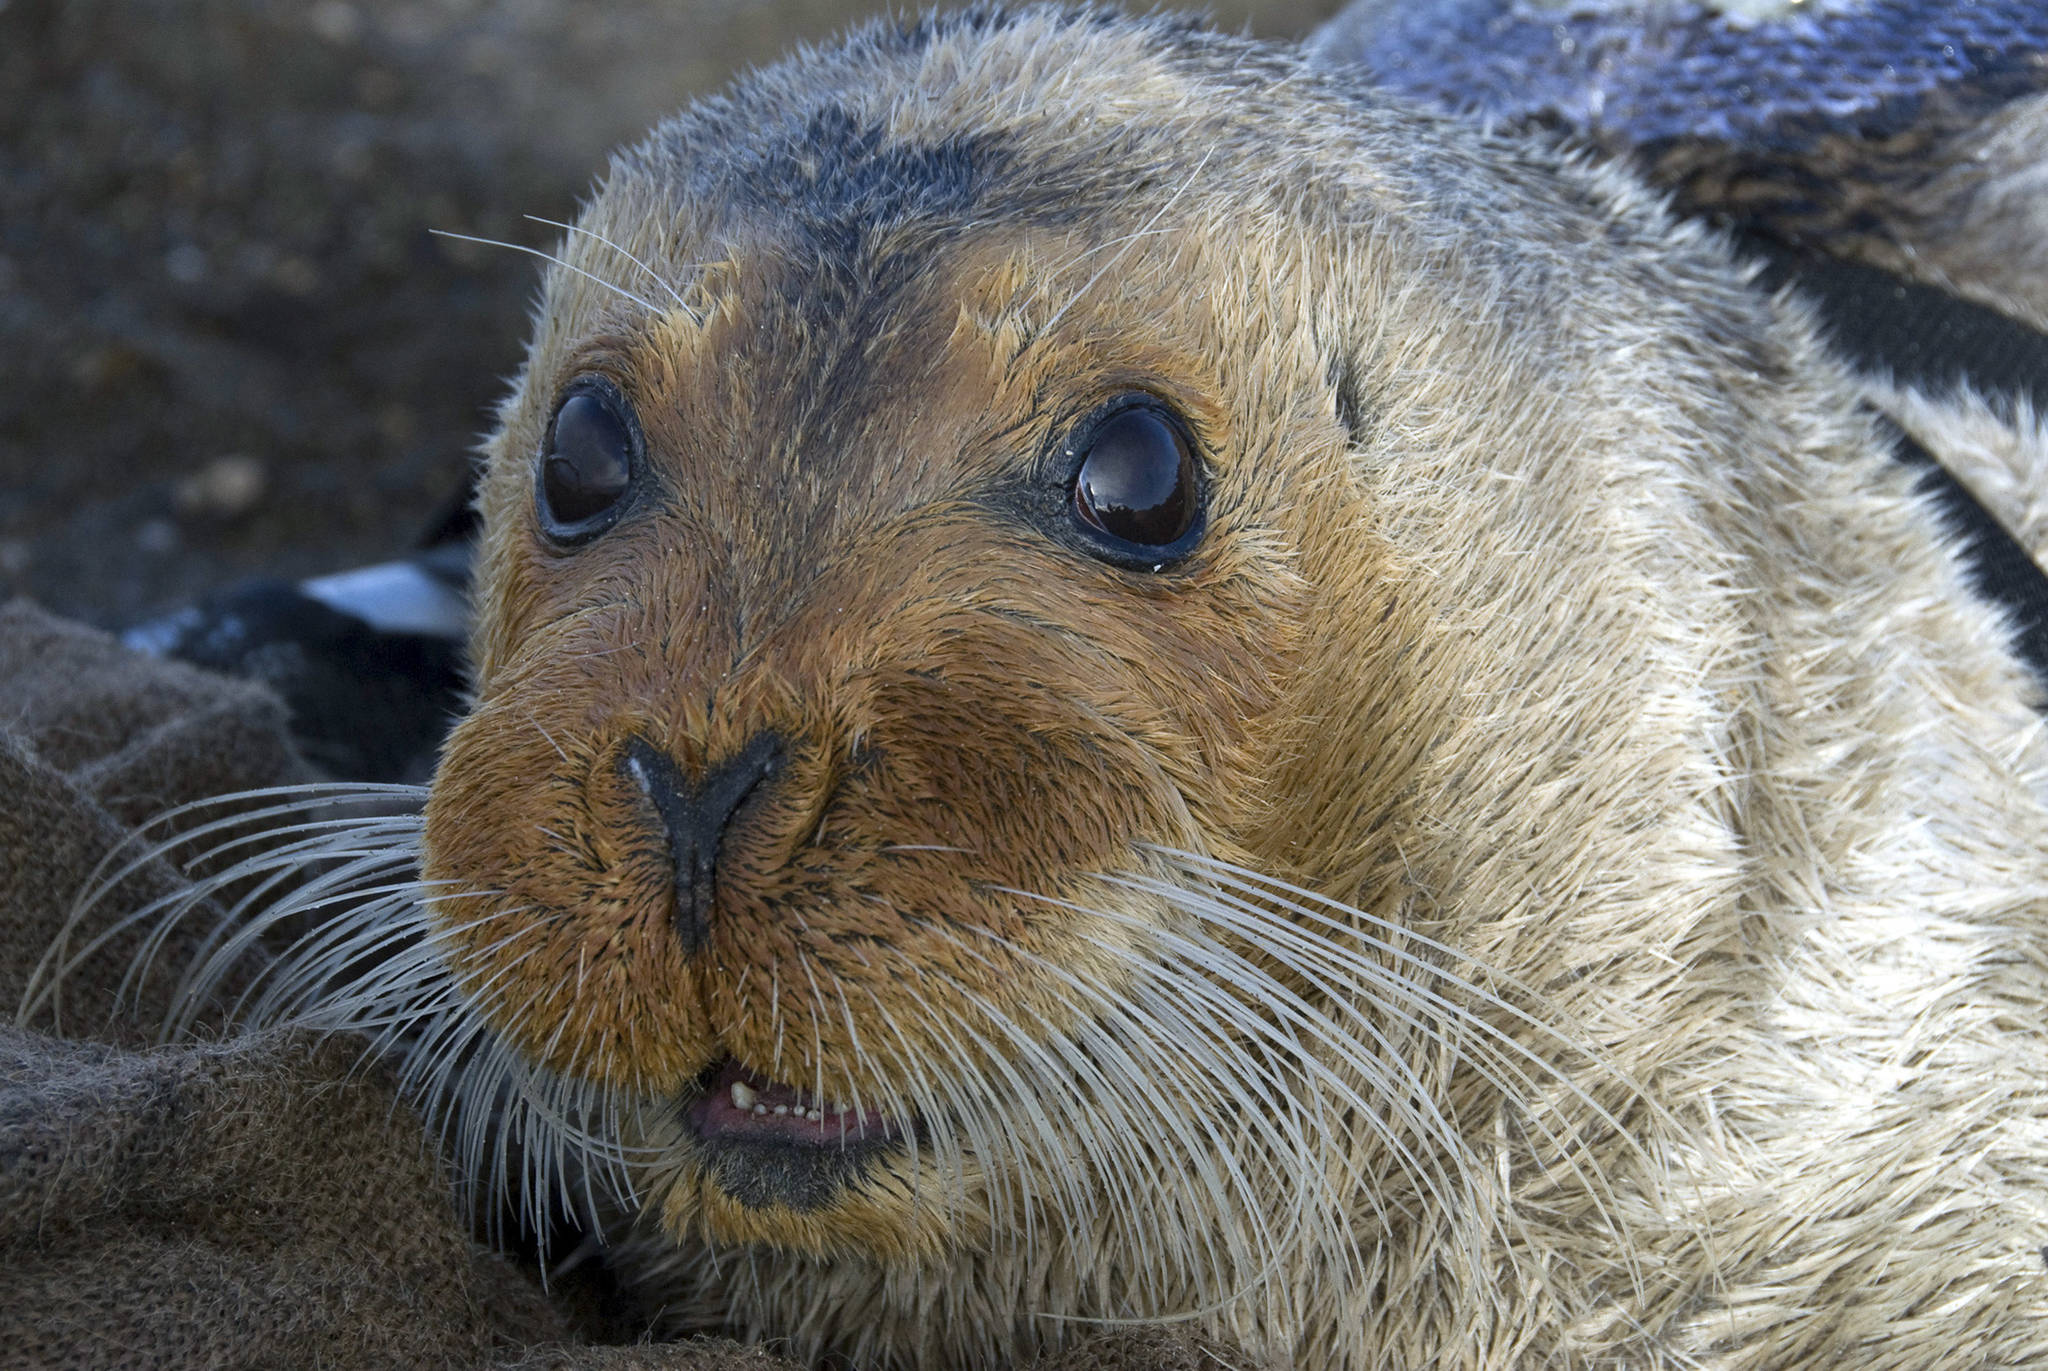 This Sept. 5, 2006, file photo, provided by the National Oceanic and Atmospheric Administration shows a bearded seal in Kotzebue, Alaska. A federal agency will decide by September how much ocean and coast will be designated as critical habitat for two ice seal species found in Alaska. The Center for Biological Diversity announced Monday, Nov. 25, 2019, it had reached an agreement with the Commerce Department for the Trump administration to issue a critical habitat rule for ringed and bearded seals. The Center for Biological Diversity sued in June because no critical habitat had been designated. (Michael Cameron/NOAA Fisheries Service via AP, file)